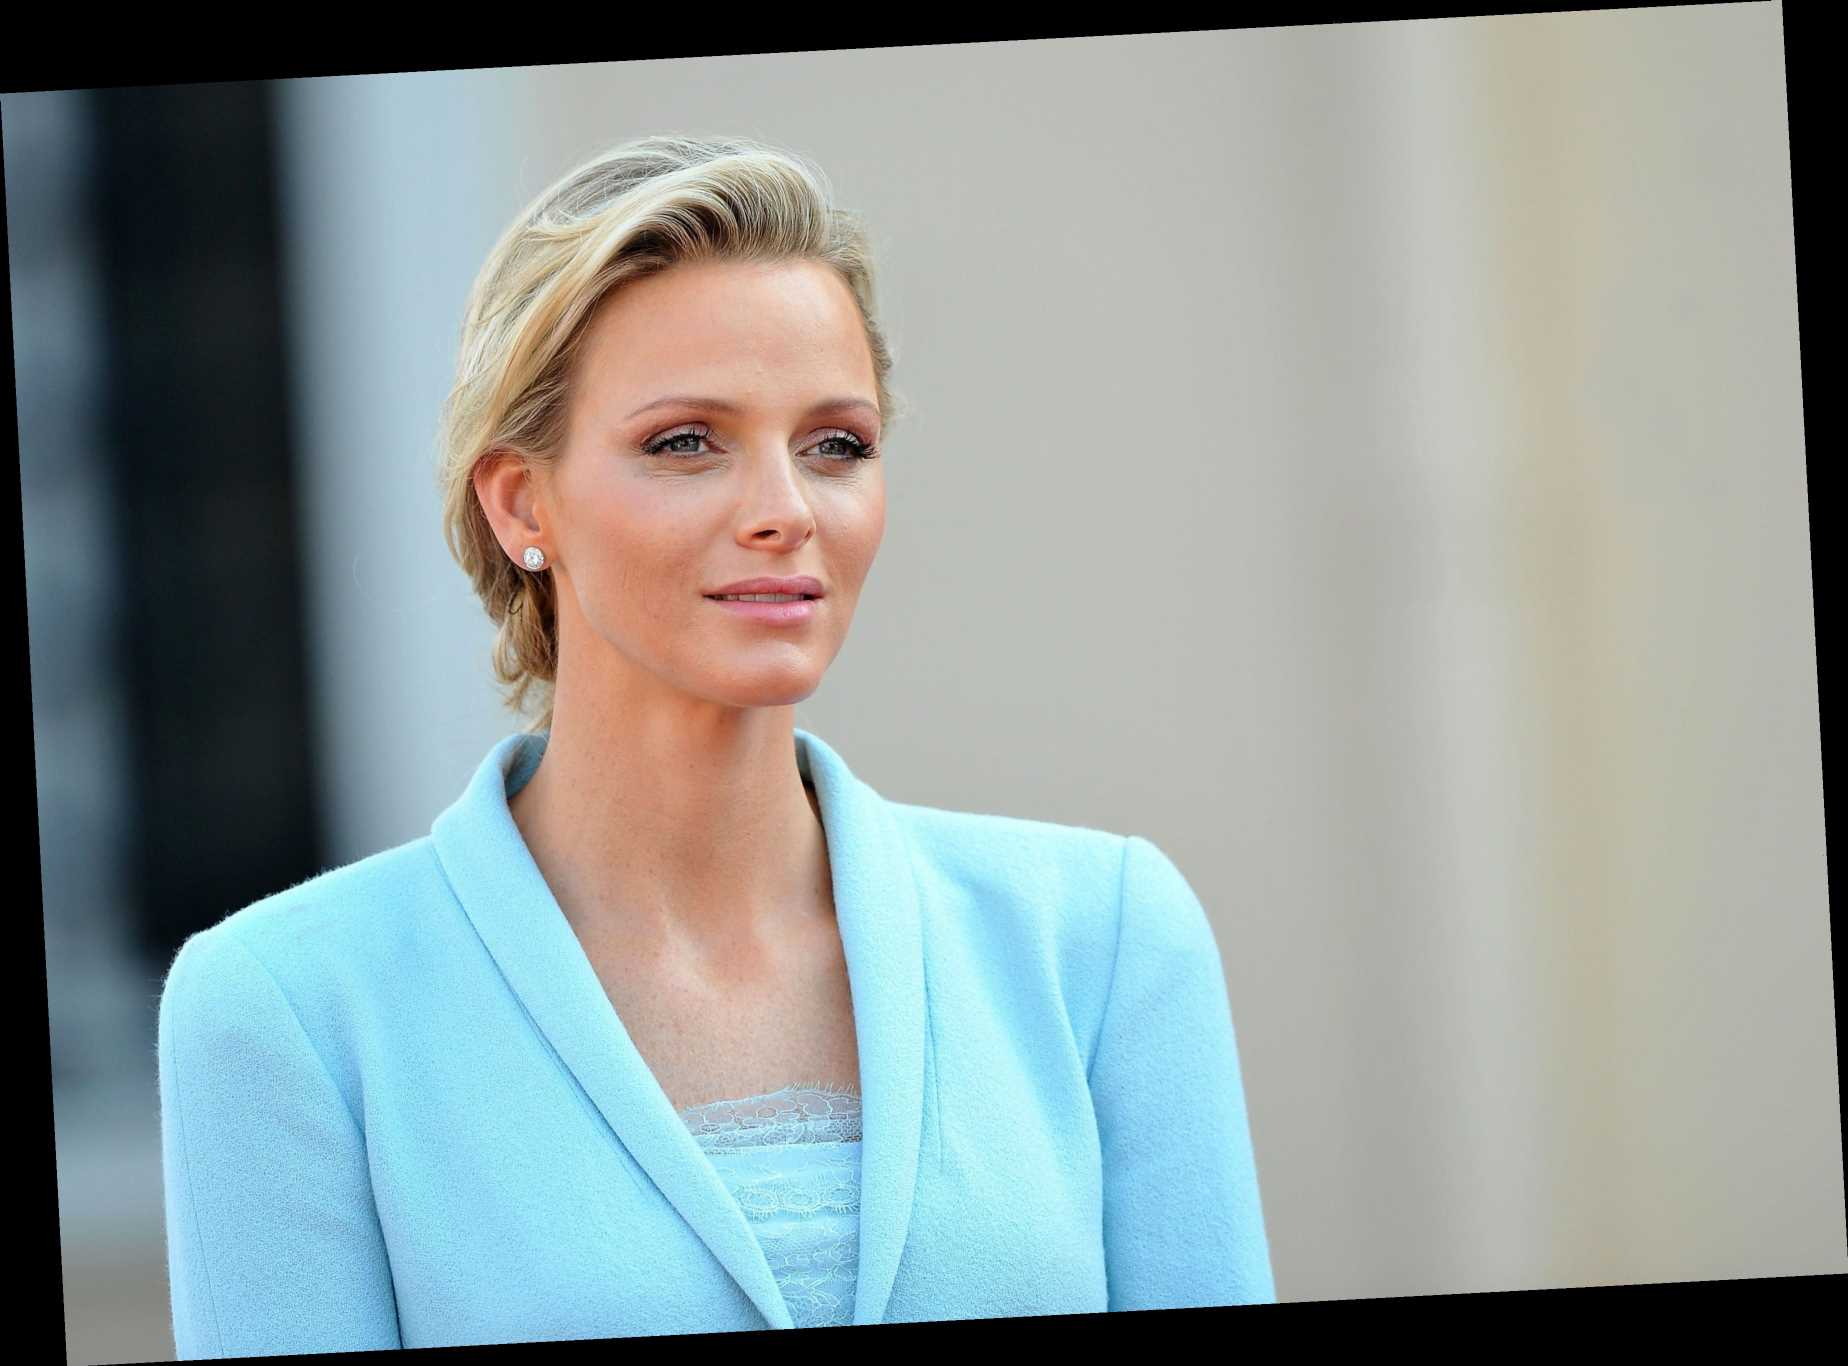 Princess Charlene Defends New Buzzcut Hairstyle: 'It Was My Decision'